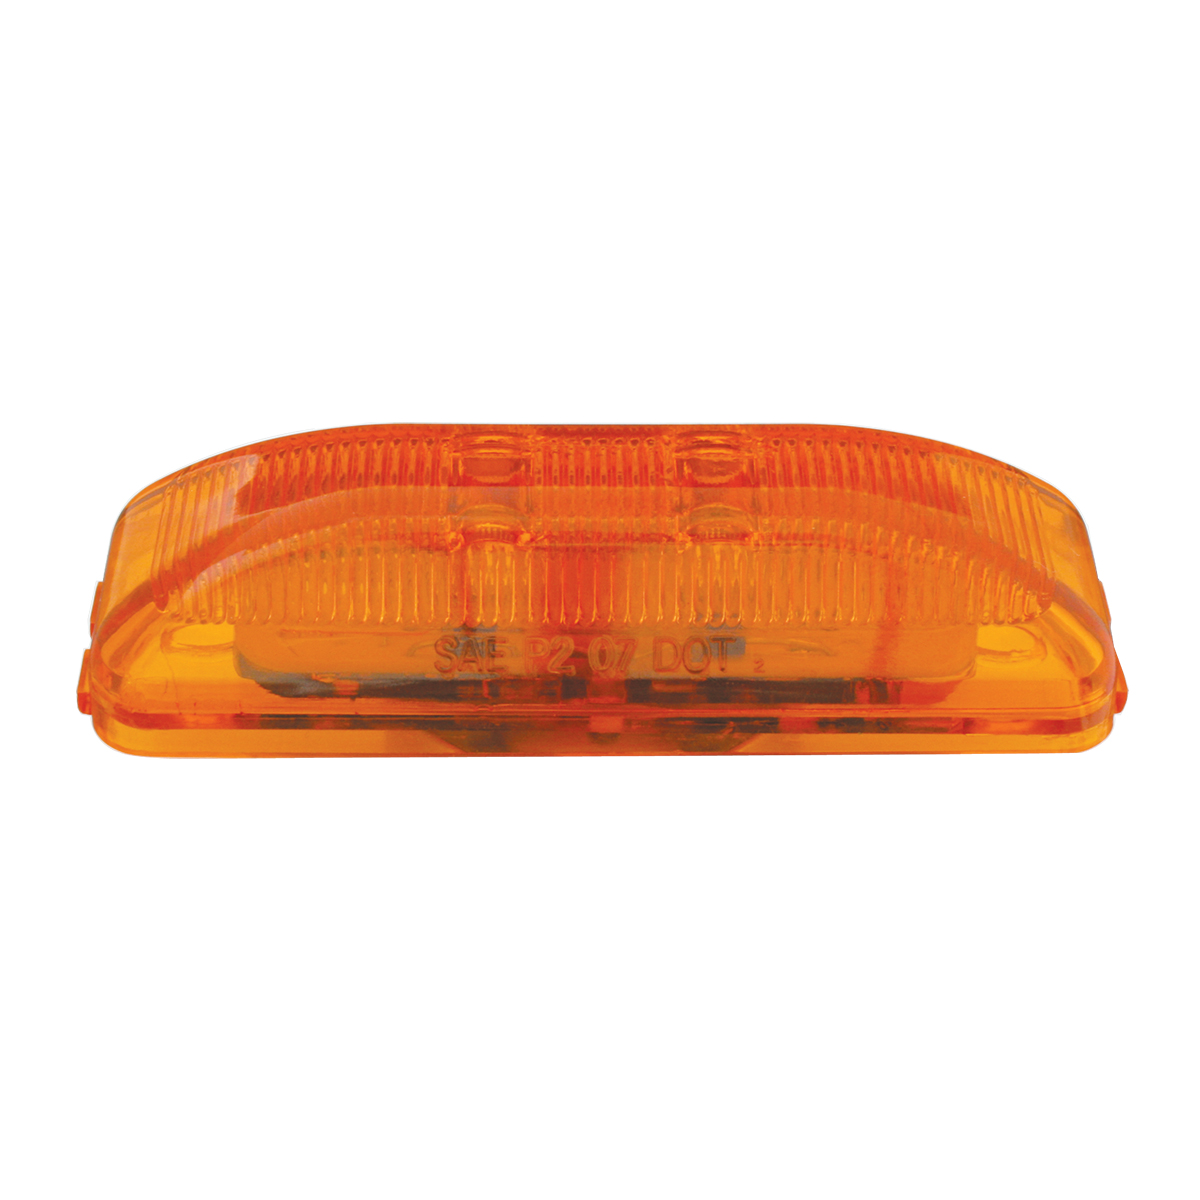 76400 Medium Rectangular Fleet LED Marker Light in Amber/Amber